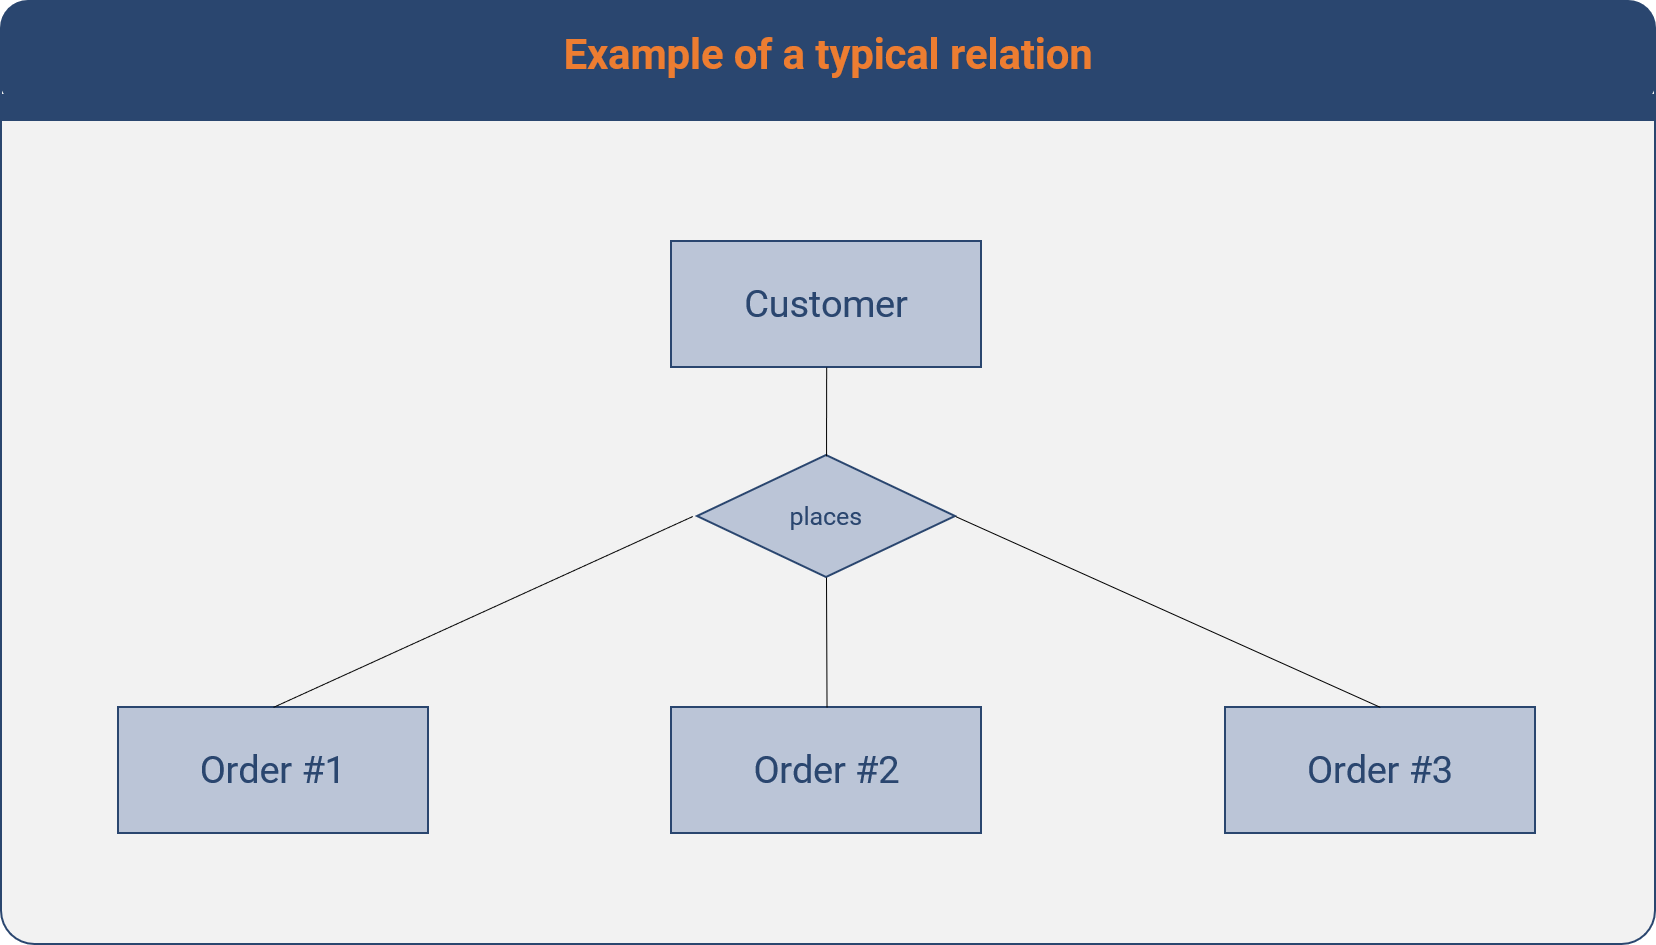 Ilustration of a typical business relation between customers and orders